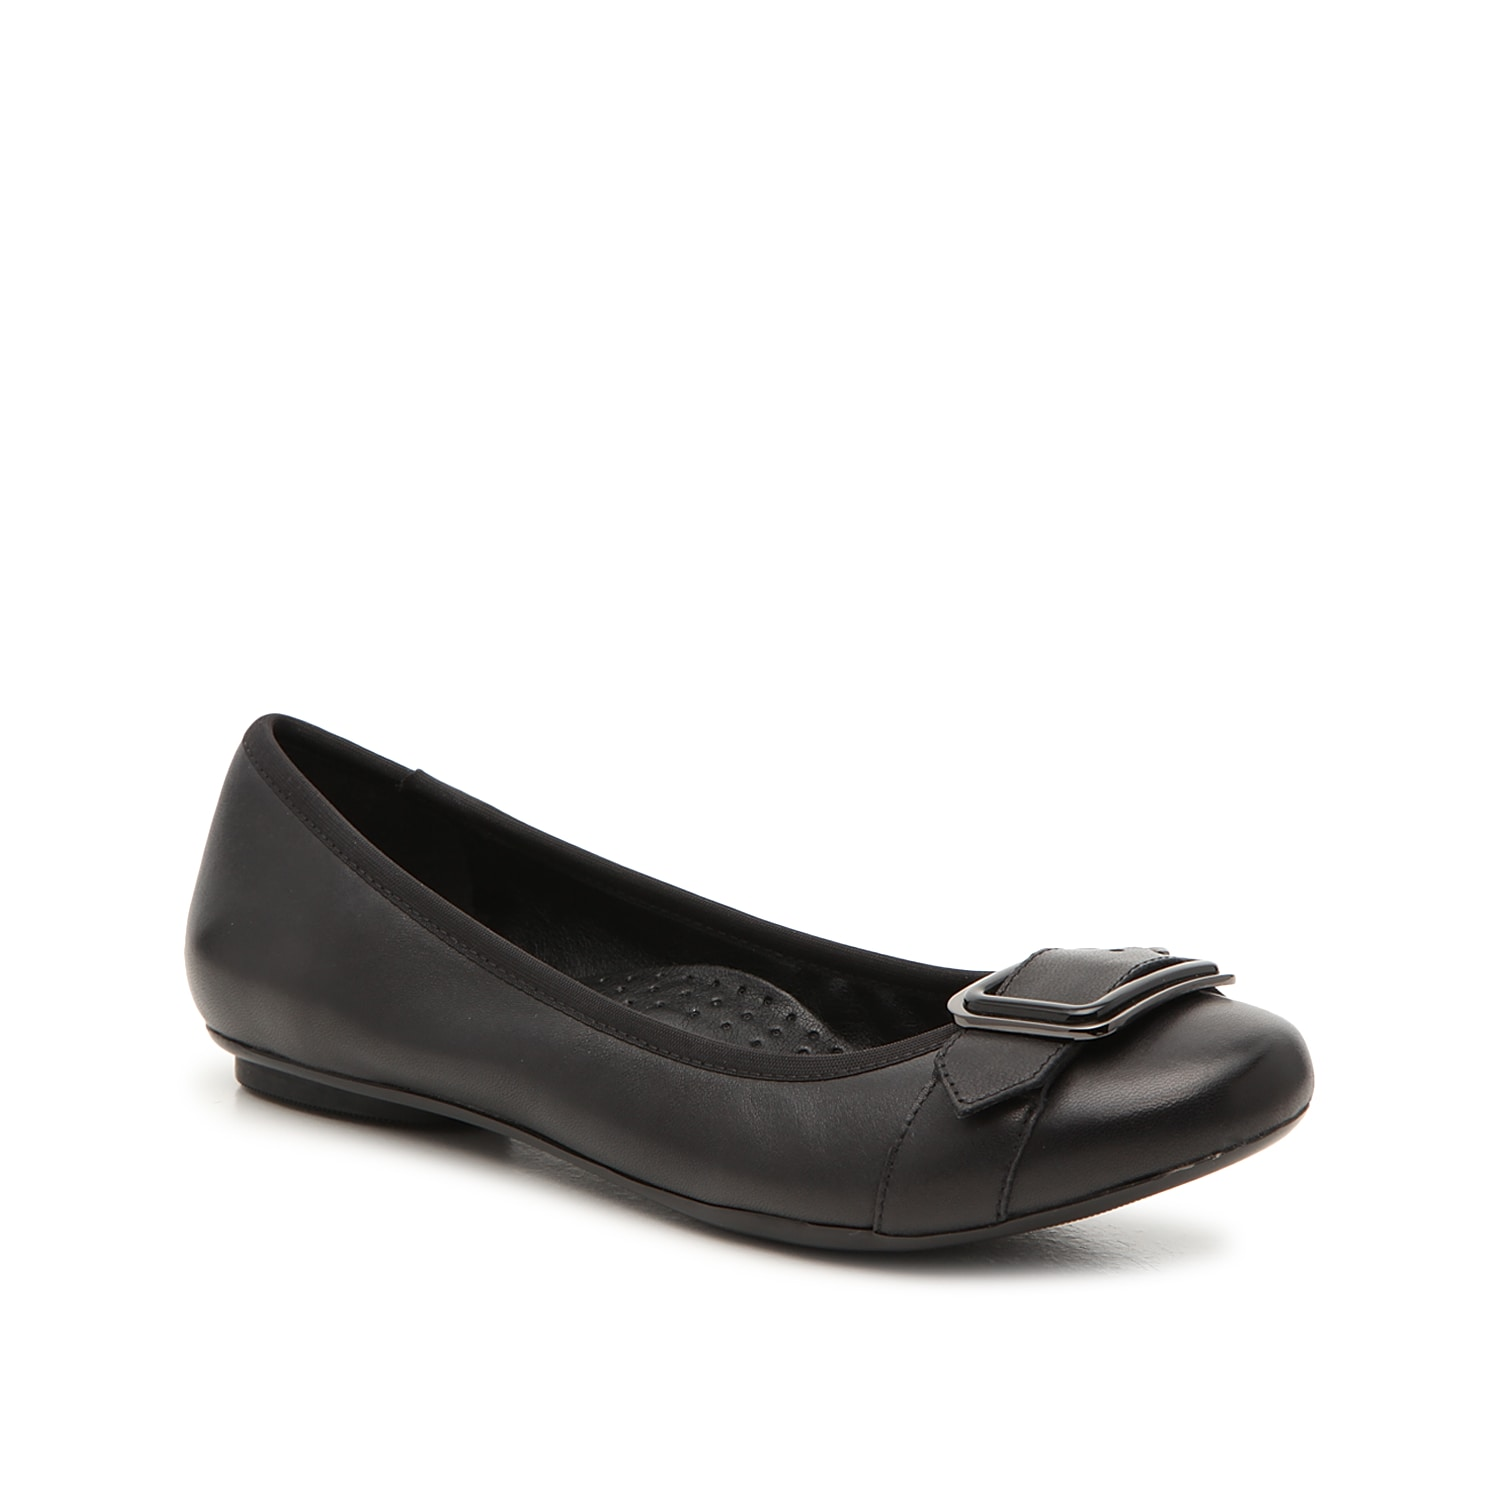 Dress up your daily ensemble with the Solana flat from VANELi. This silhouette is fashioned with a buckle embellishment and an arch supported footbed for extra comfortable steps!